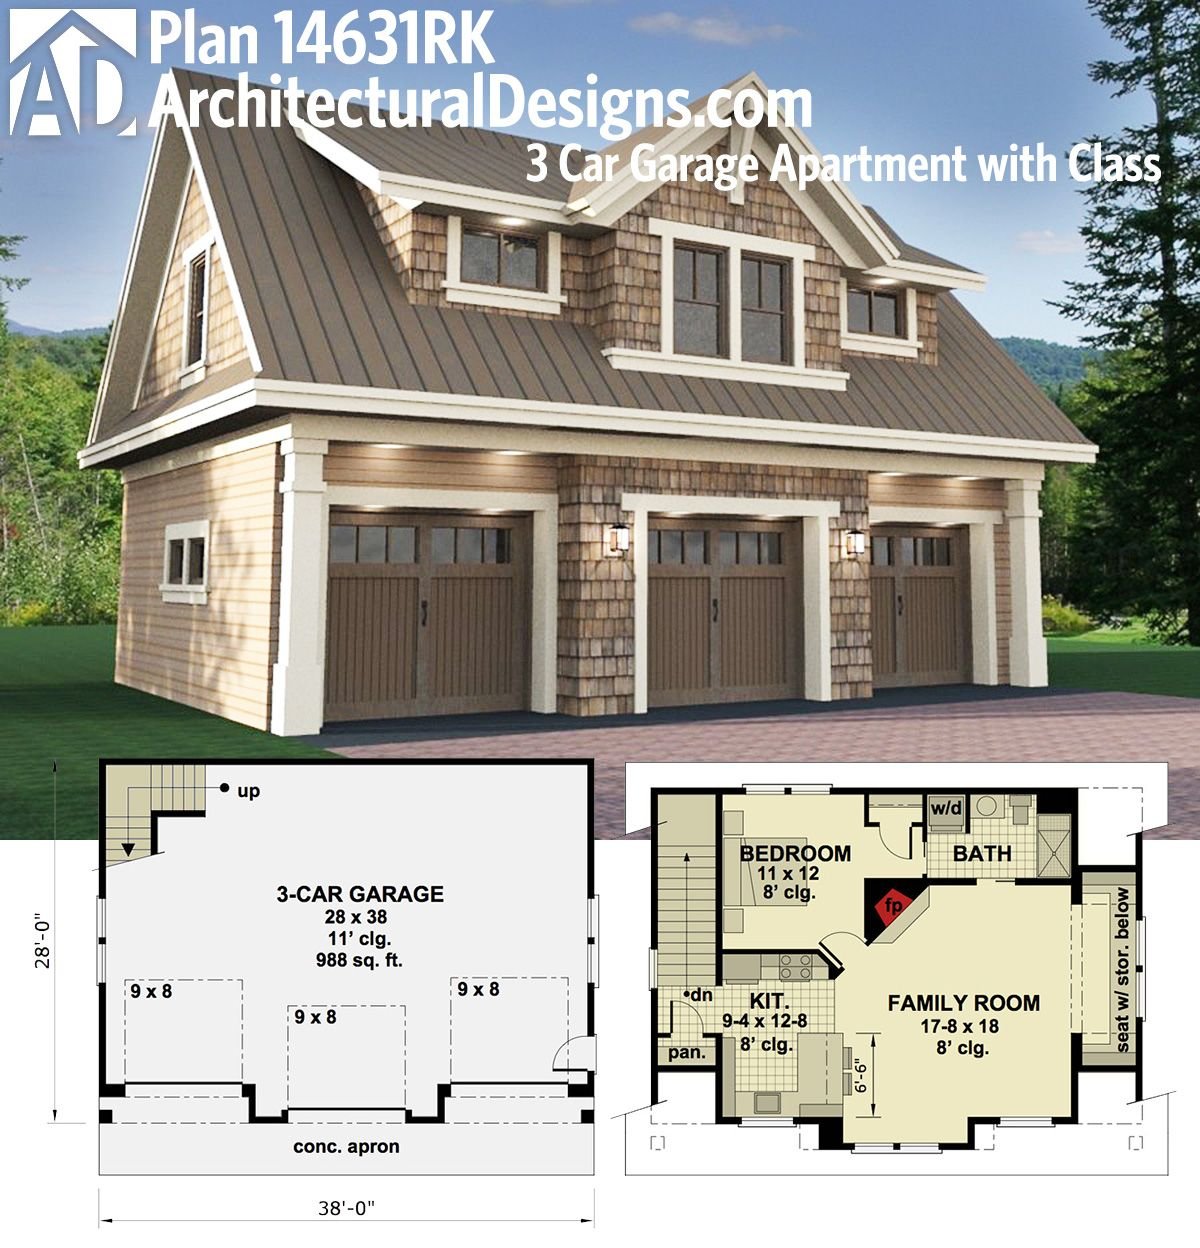 Garage Apartment Plan 14631rk 3 Car Garage Apartment With Class Your Home Should